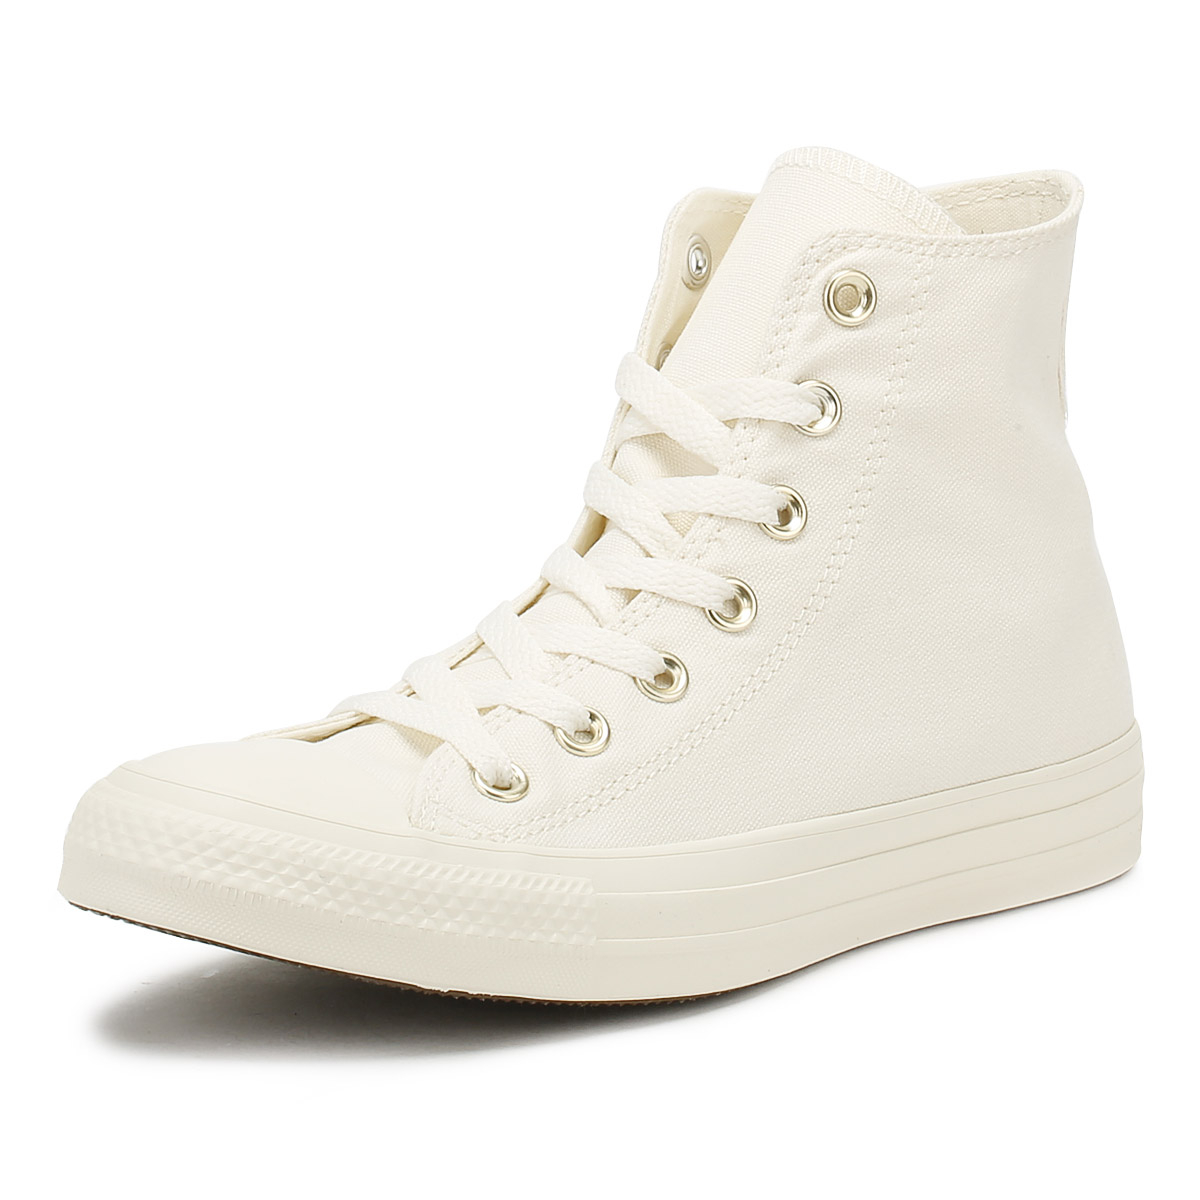 2144303cb73685 Details about Converse Chuck Taylor All Star Womens Hi Trainers Egret    Gold Lace Up Shoes